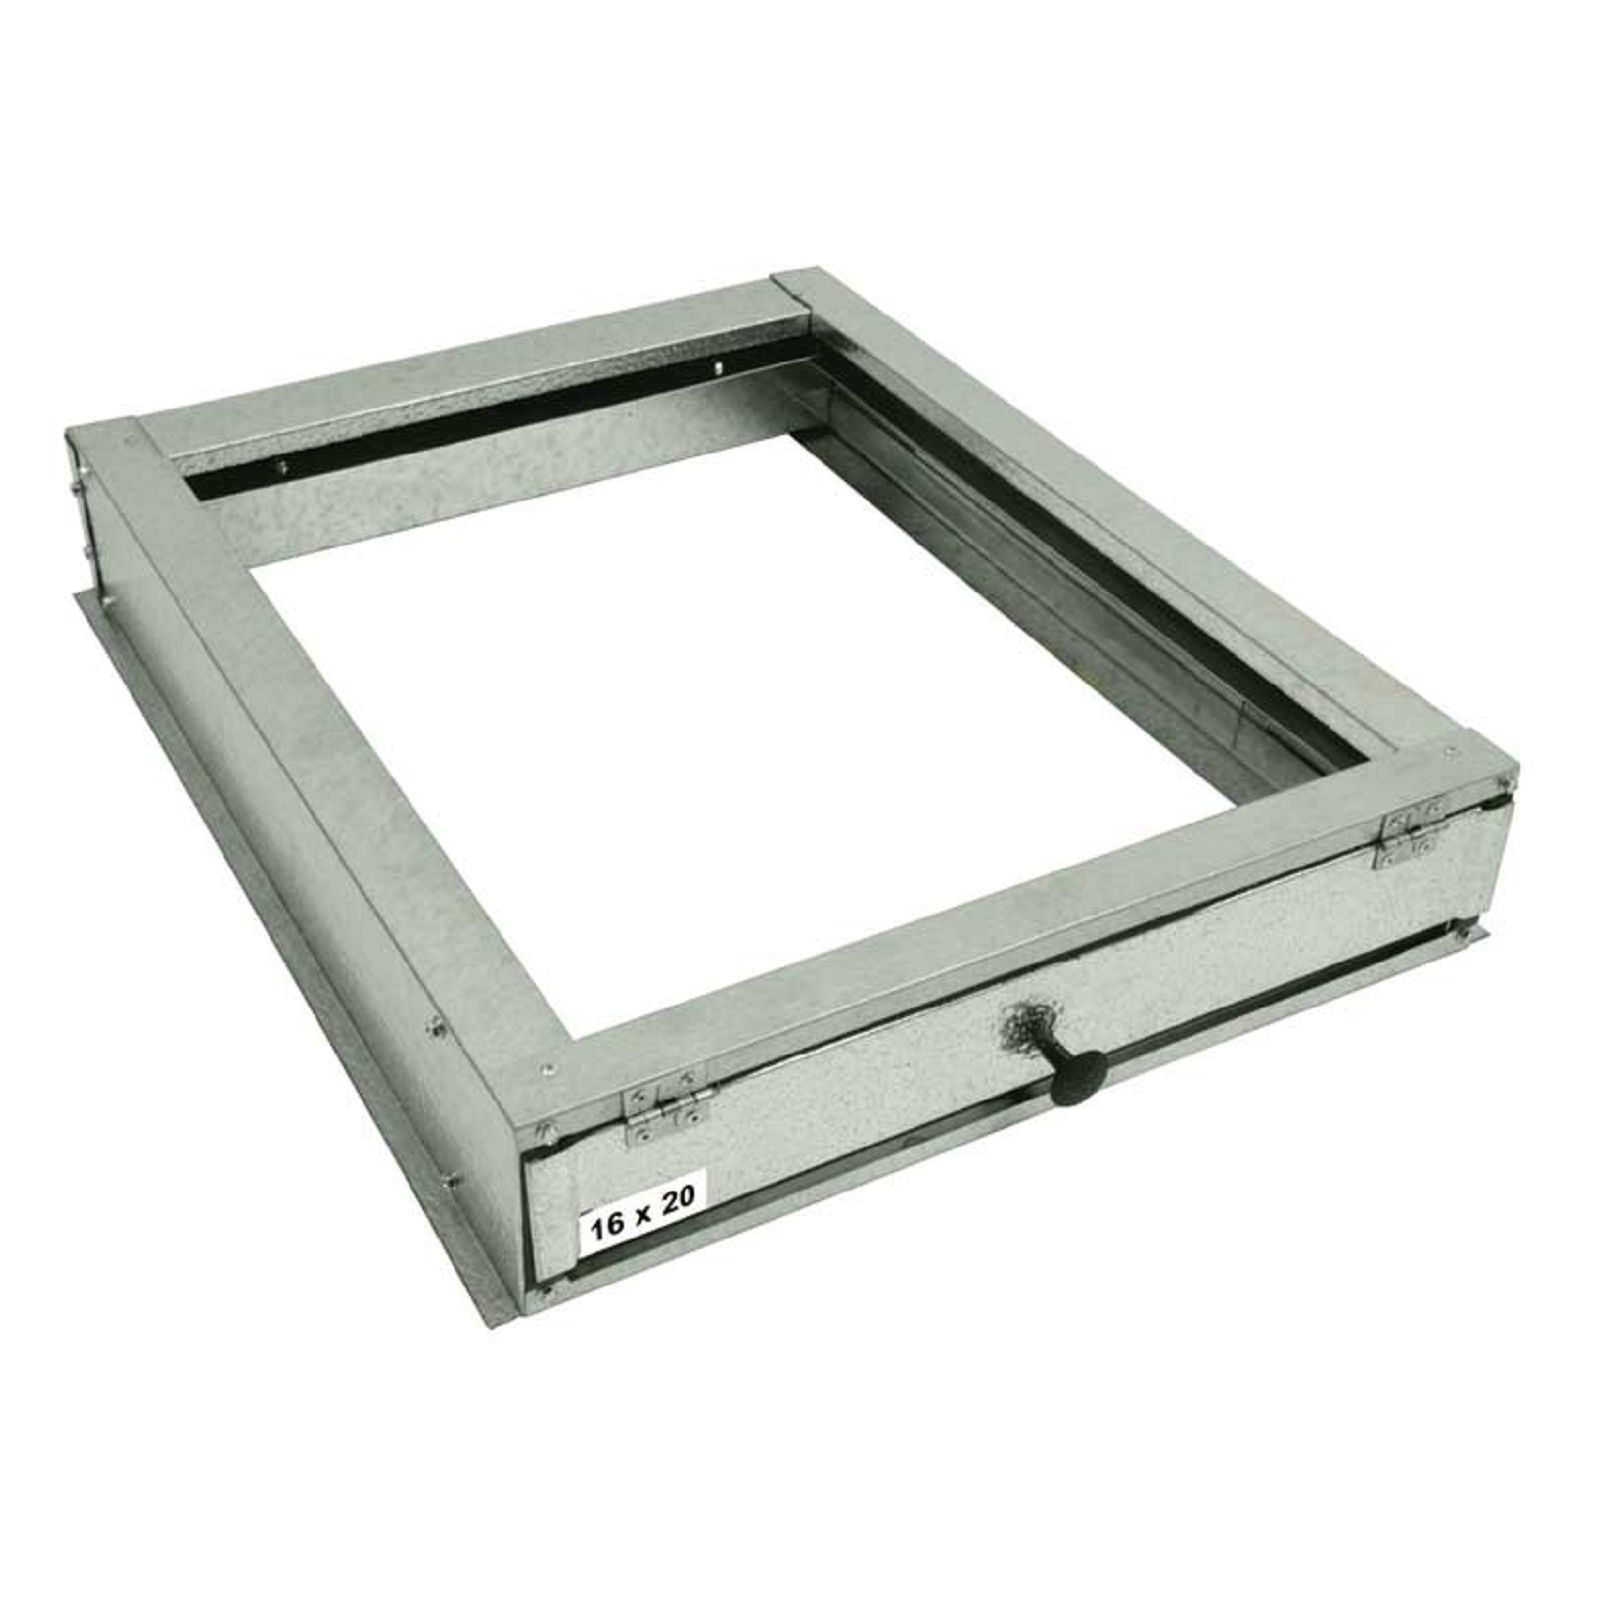 "McDaniel ACE2020-3 - Accommodator/Filter Housing for Electric Furnaces, 20"" X 20"" X 1"" Or 2"" Filter"